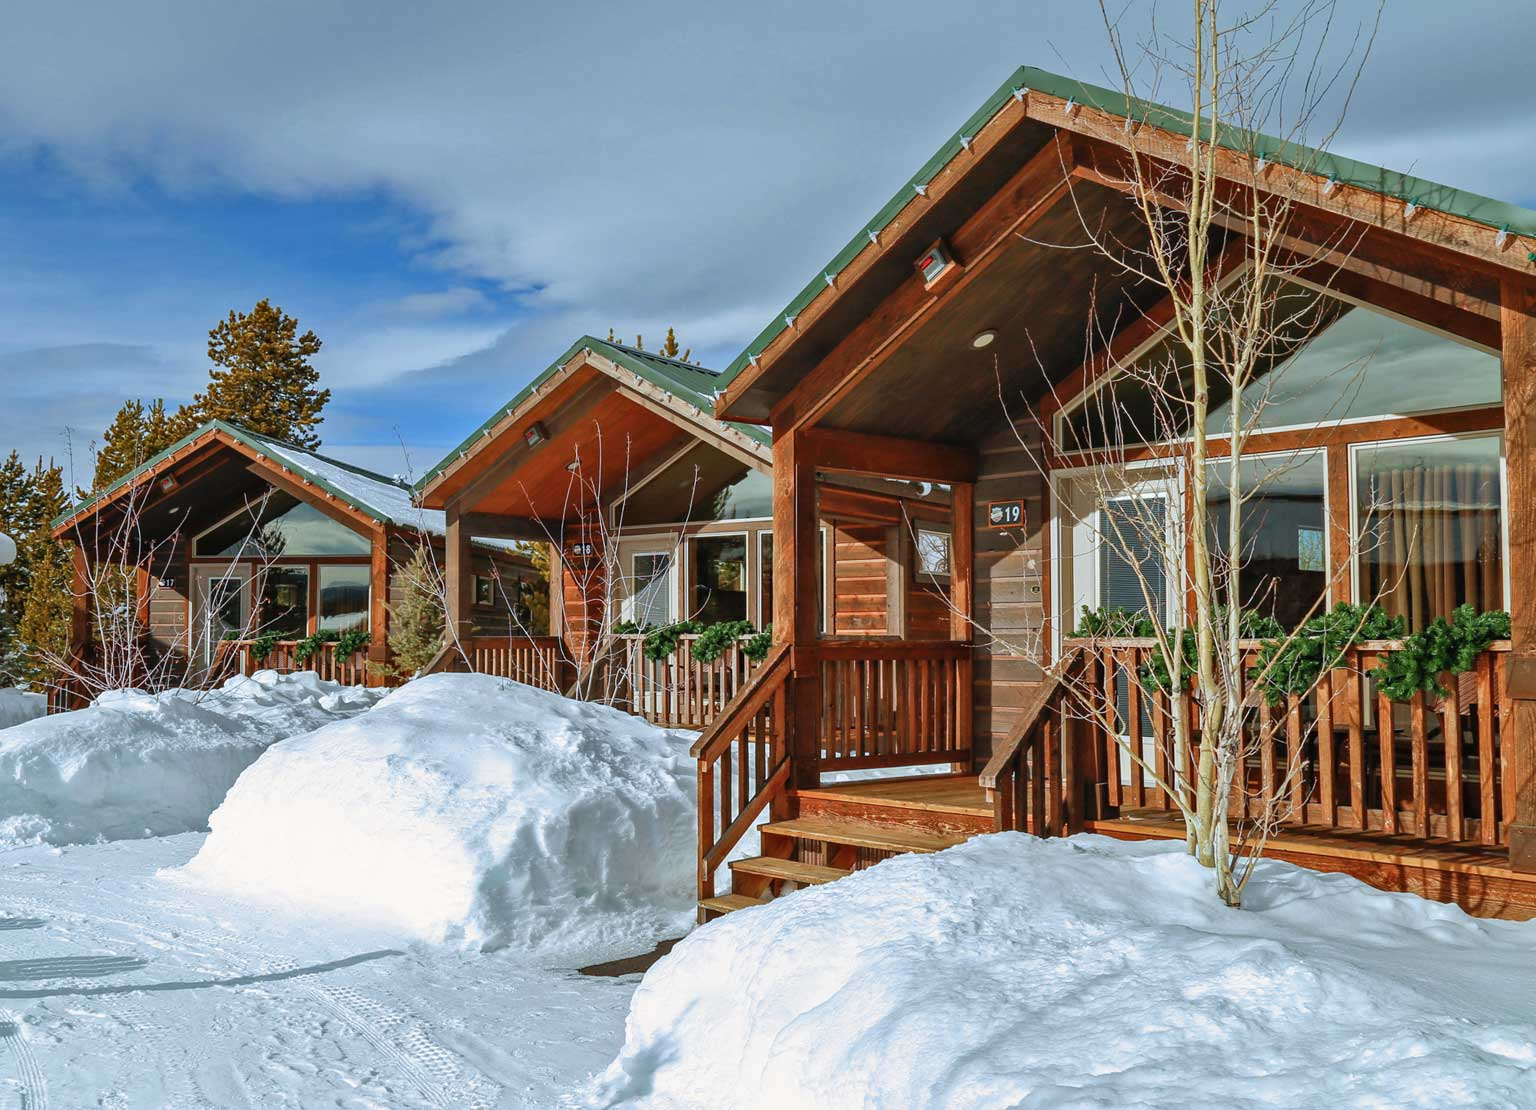 The Explorer Cabins in Yellowstone during winter